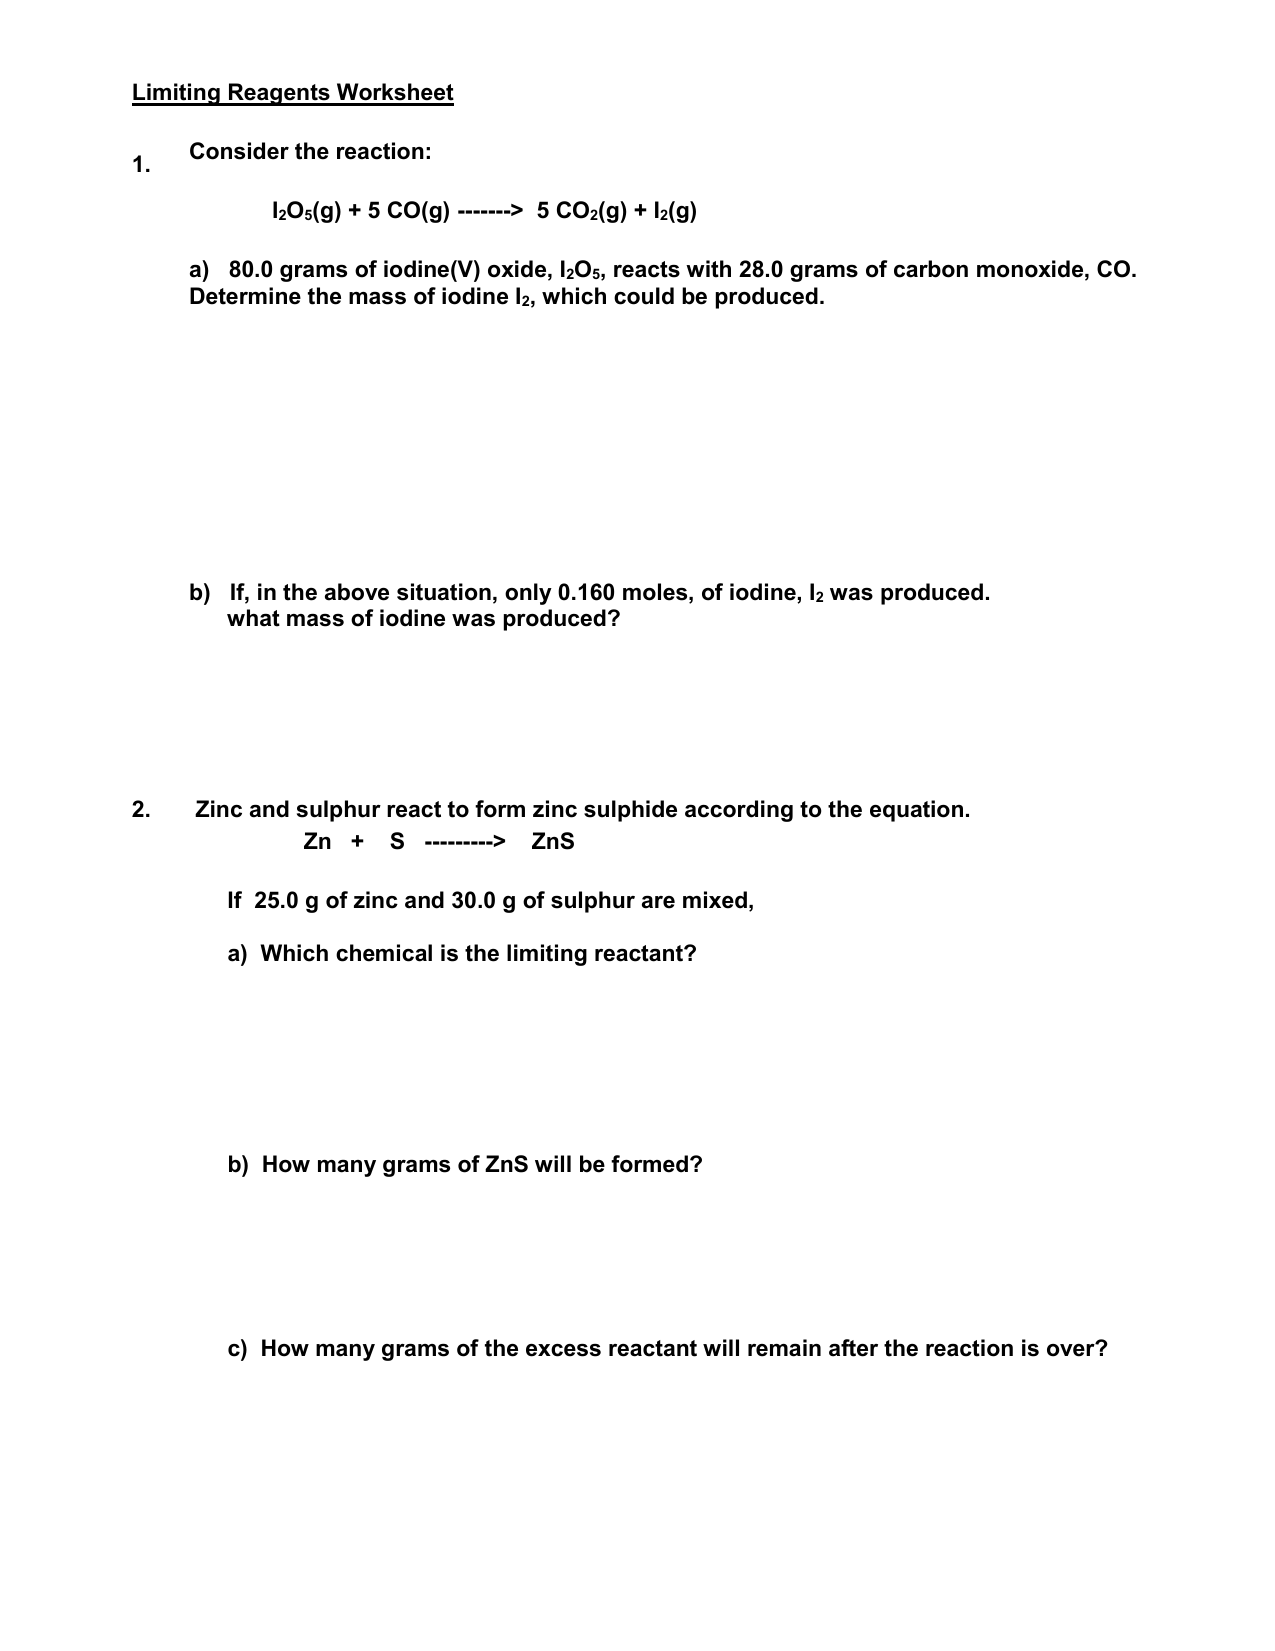 Limiting reagents worksheet robcynllc Image collections